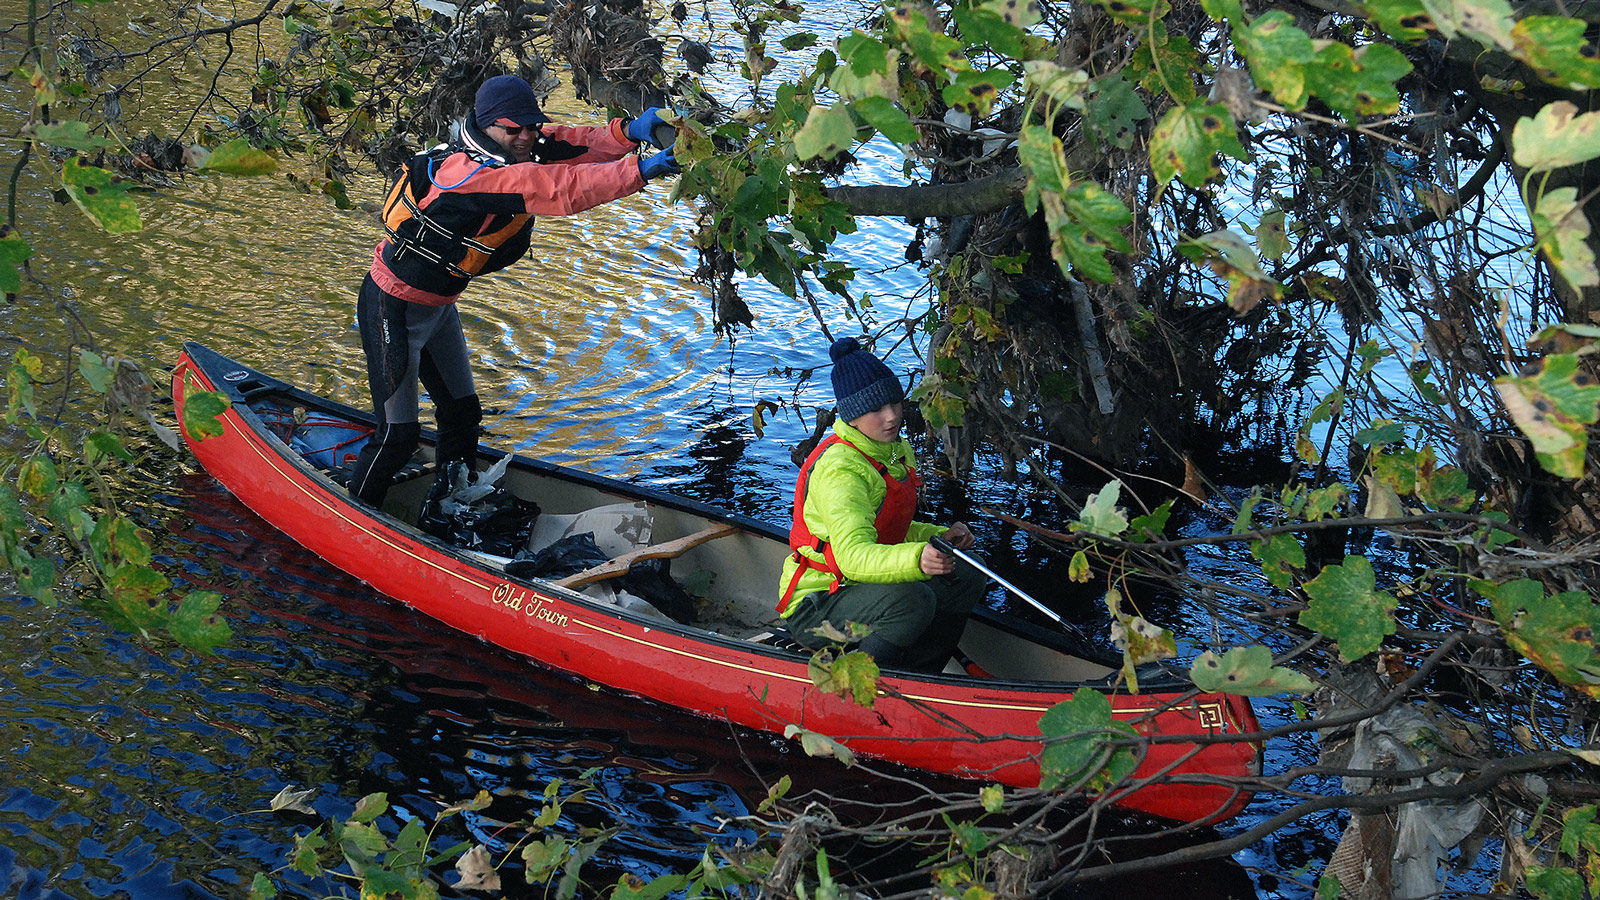 litter-pick-11-canoeists-1600